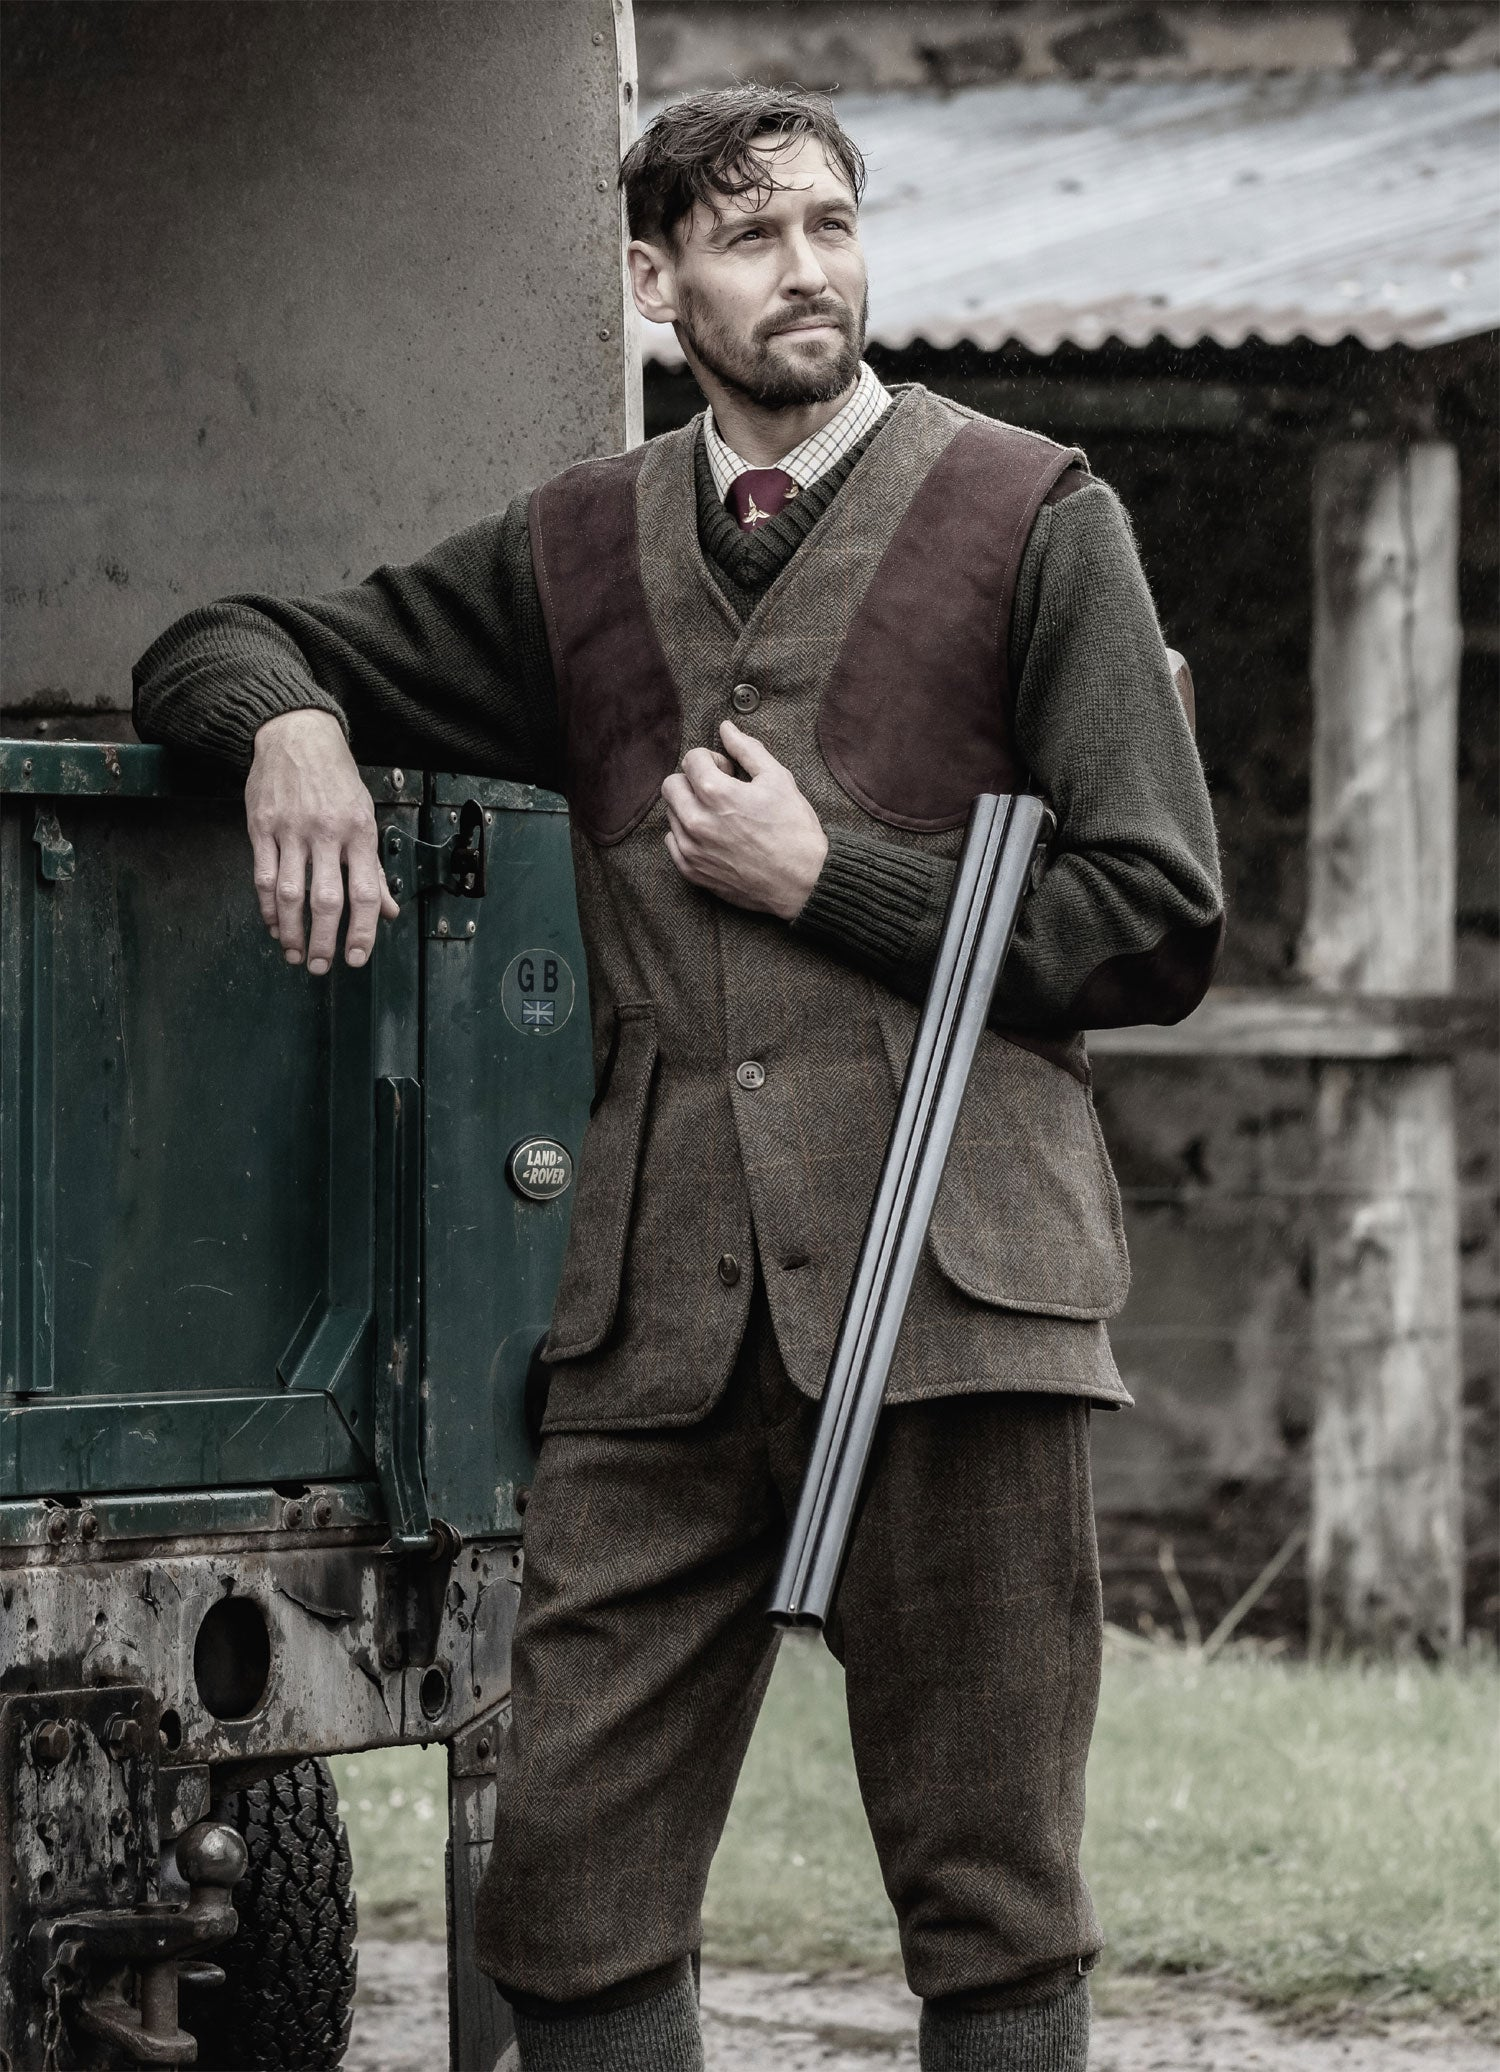 Harewood tweed shooting outfit